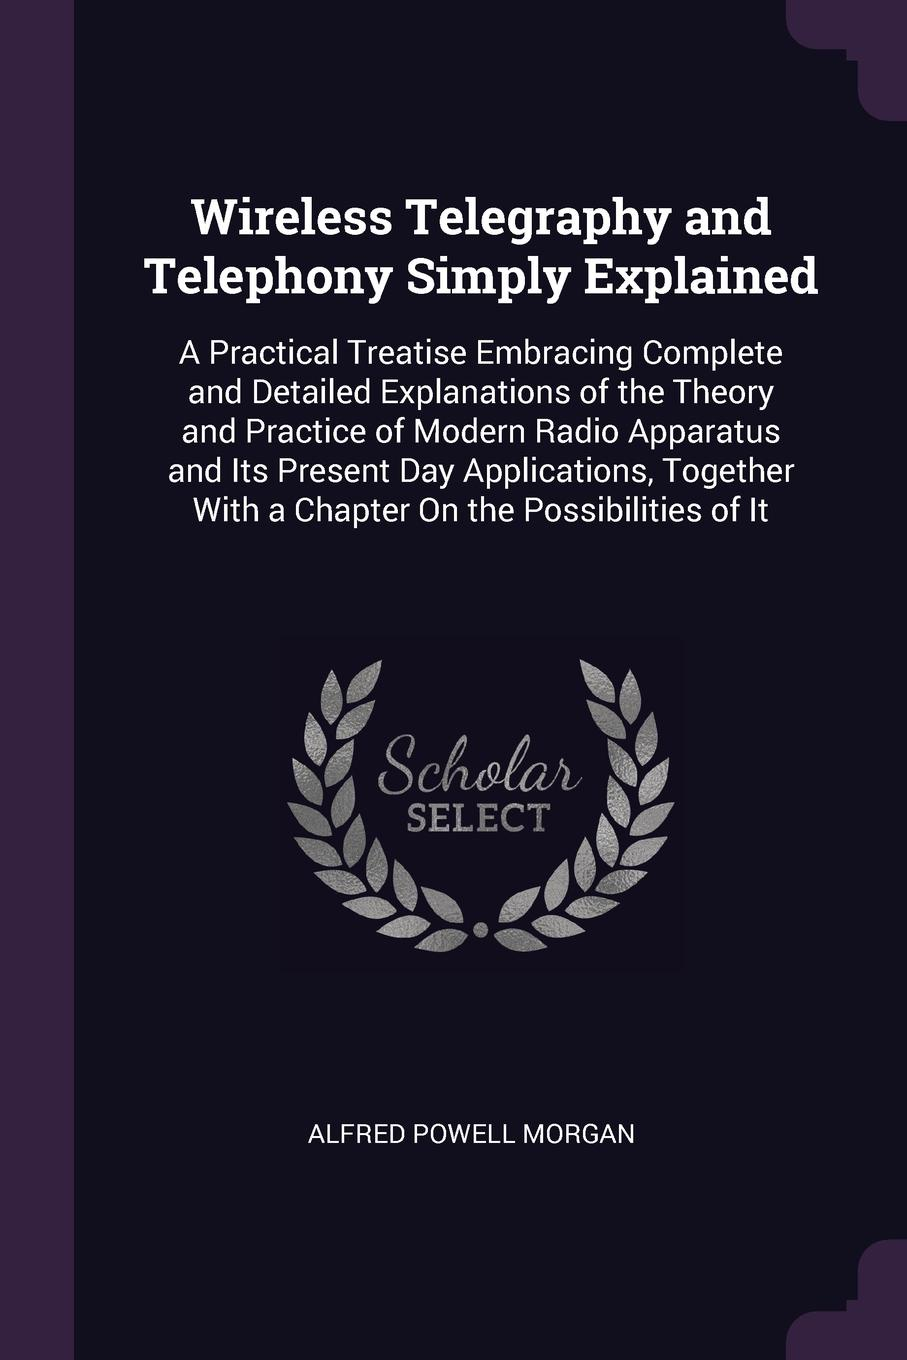 Wireless Telegraphy and Telephony Simply Explained. A Practical Treatise Embracing Complete and Detailed Explanations of the Theory and Practice of Modern Radio Apparatus and Its Present Day Applications, Together With a Chapter On the Possibiliti...